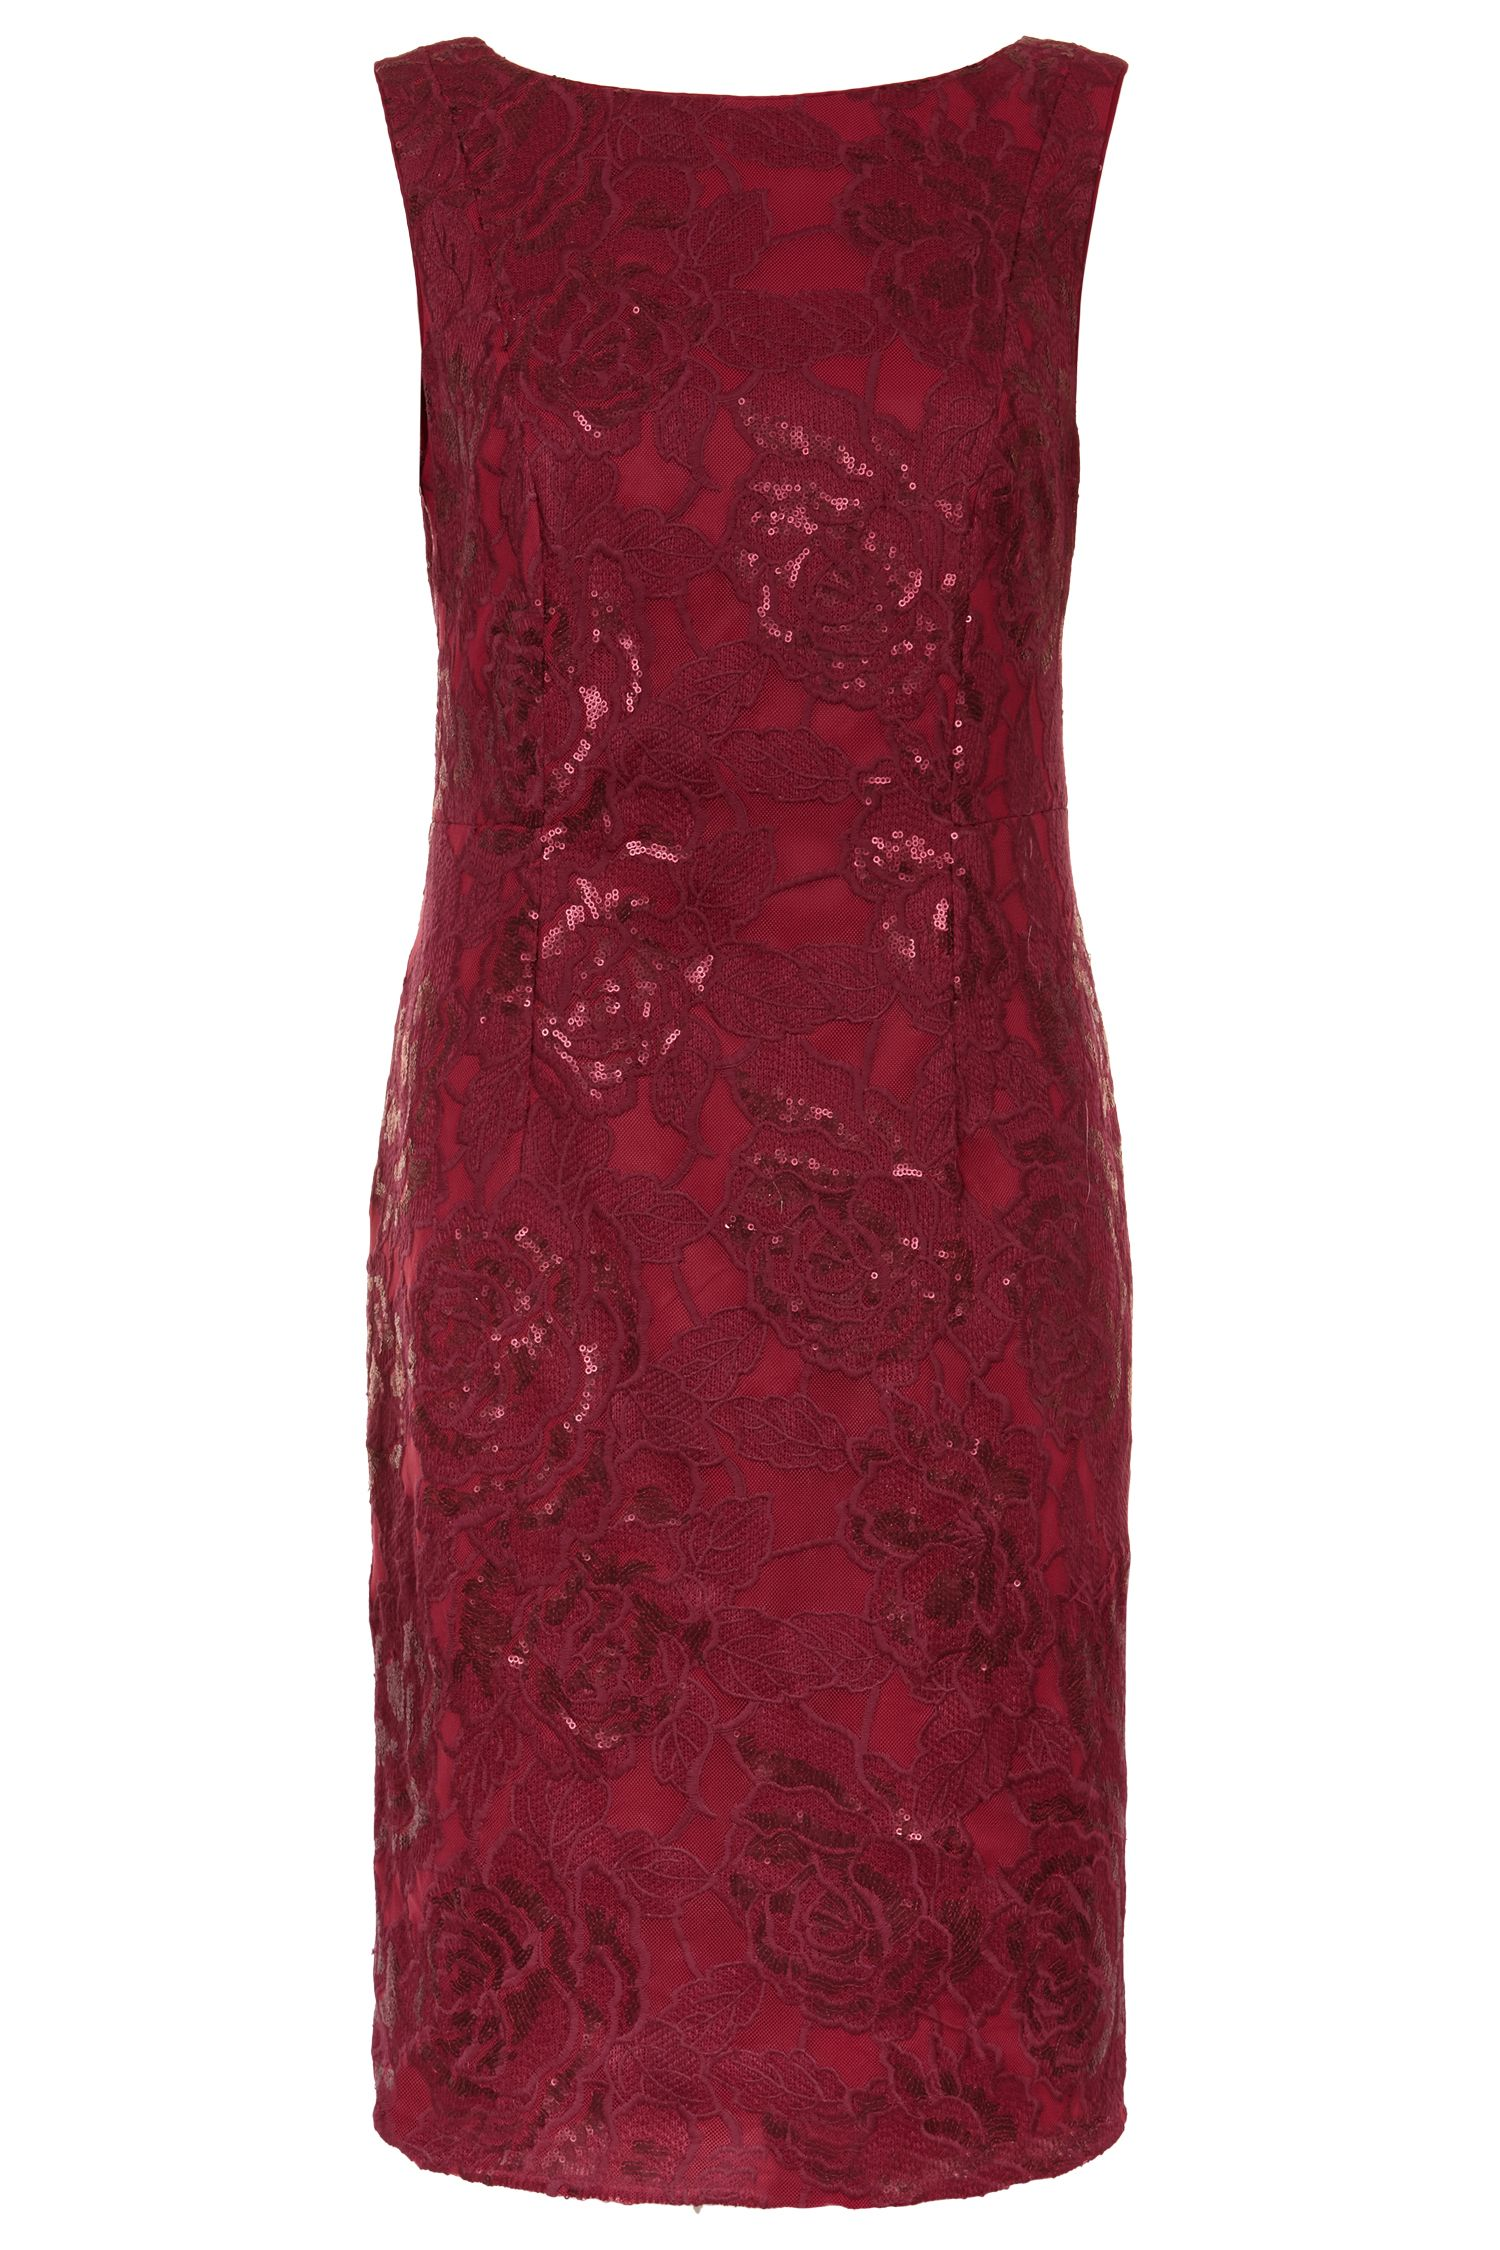 Fenn Wright Manson Volcano Dress, Red